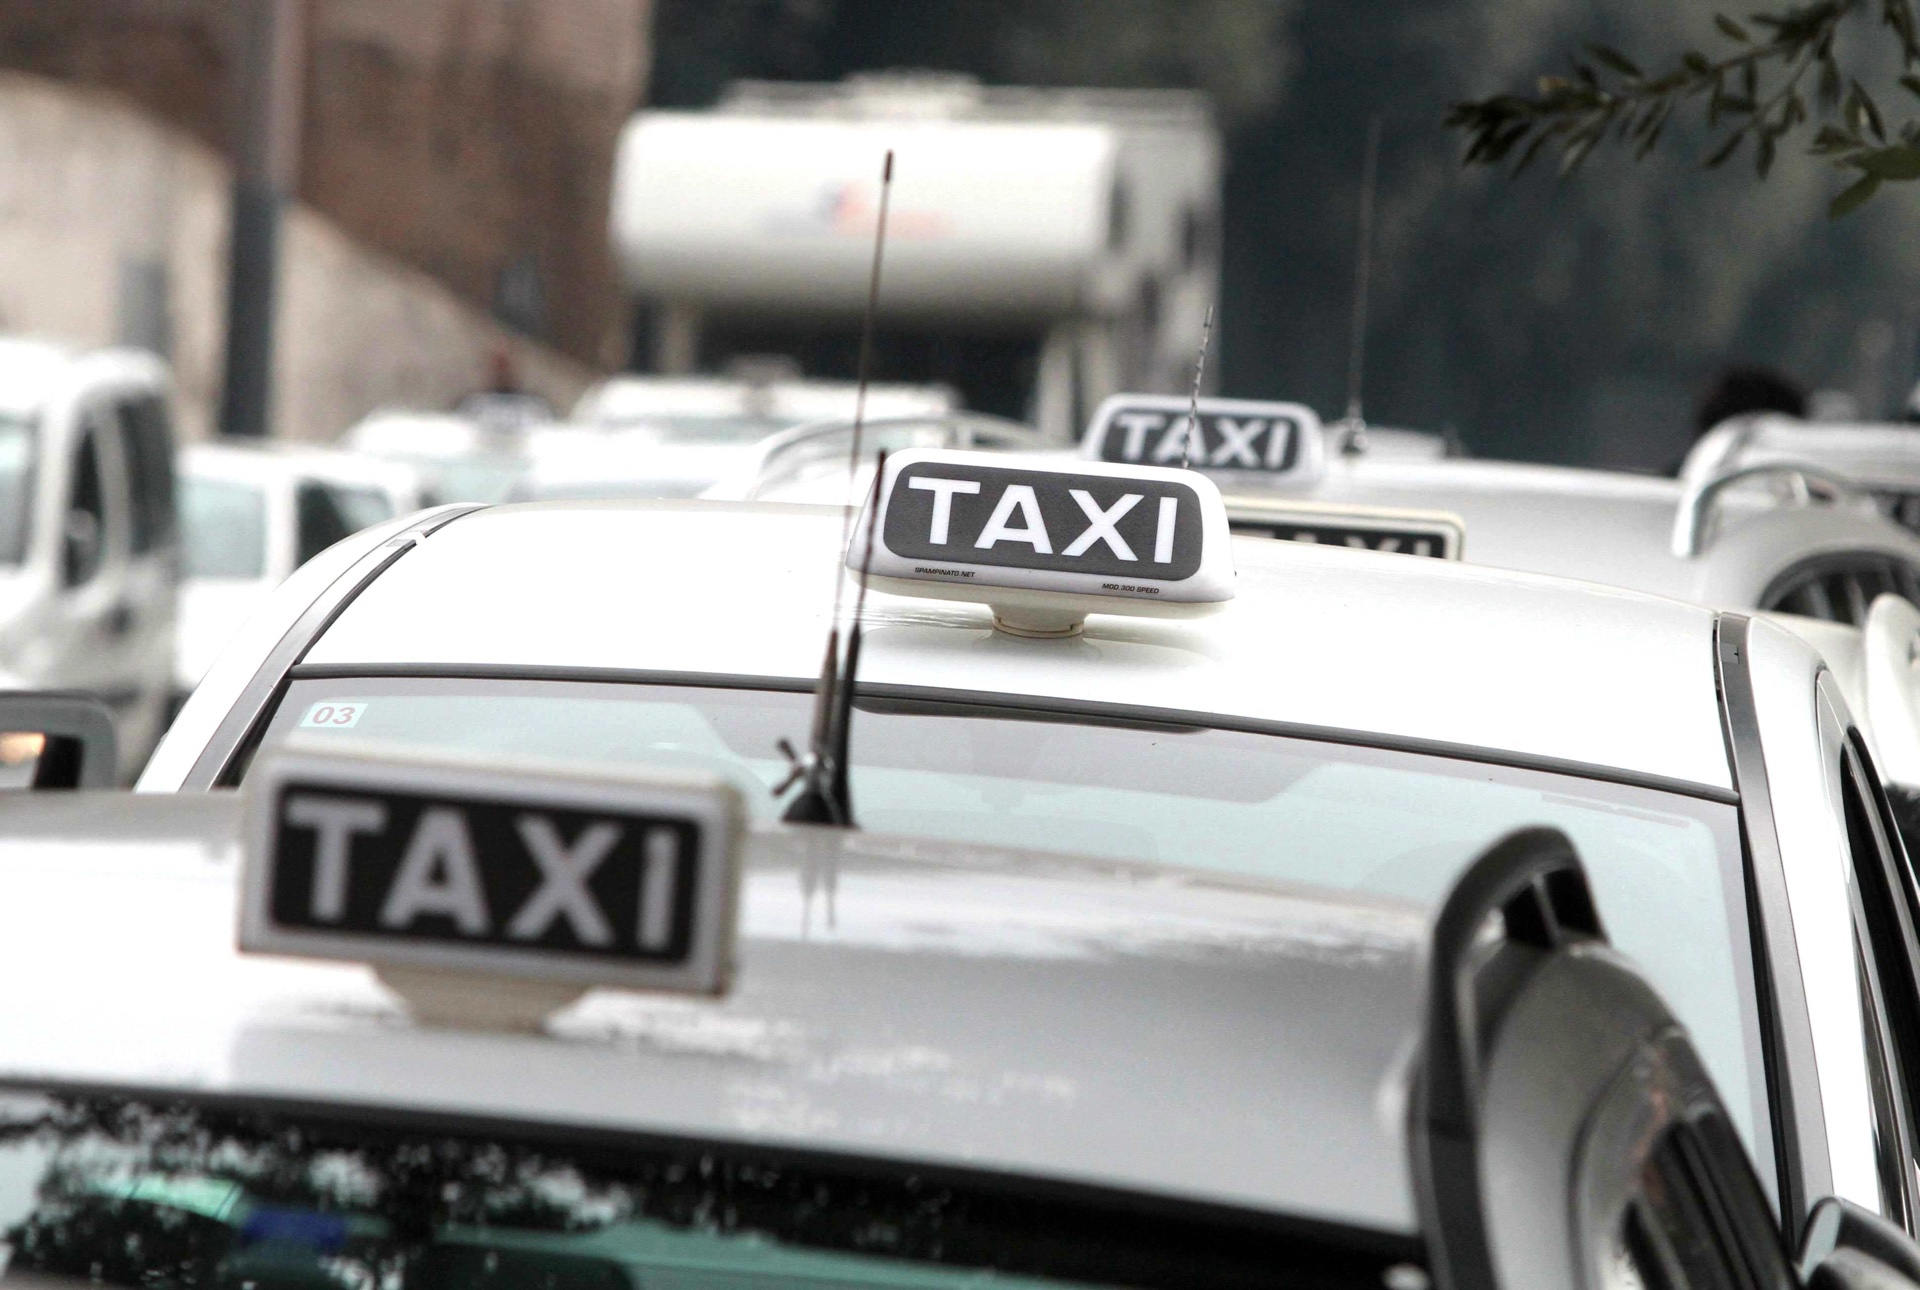 Taxi, in agguato trappole video-scandalistiche